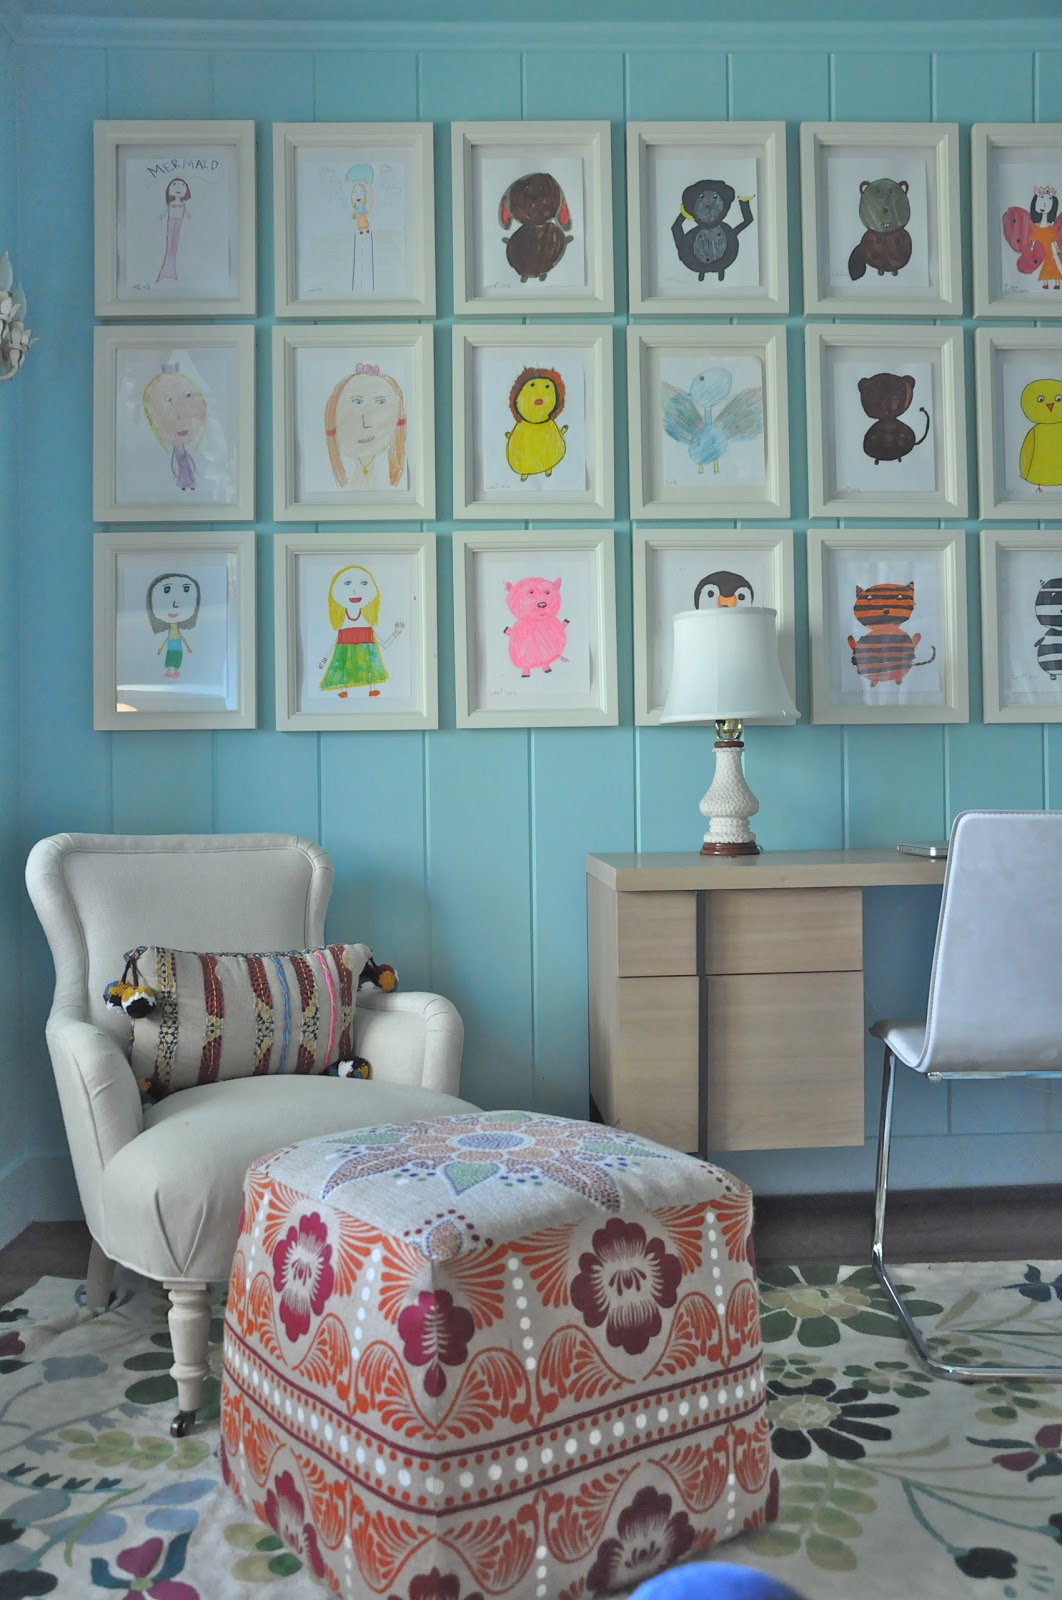 A 10 year old 39 s room by giannetti designs via made by for Room decor for 10 year old boy